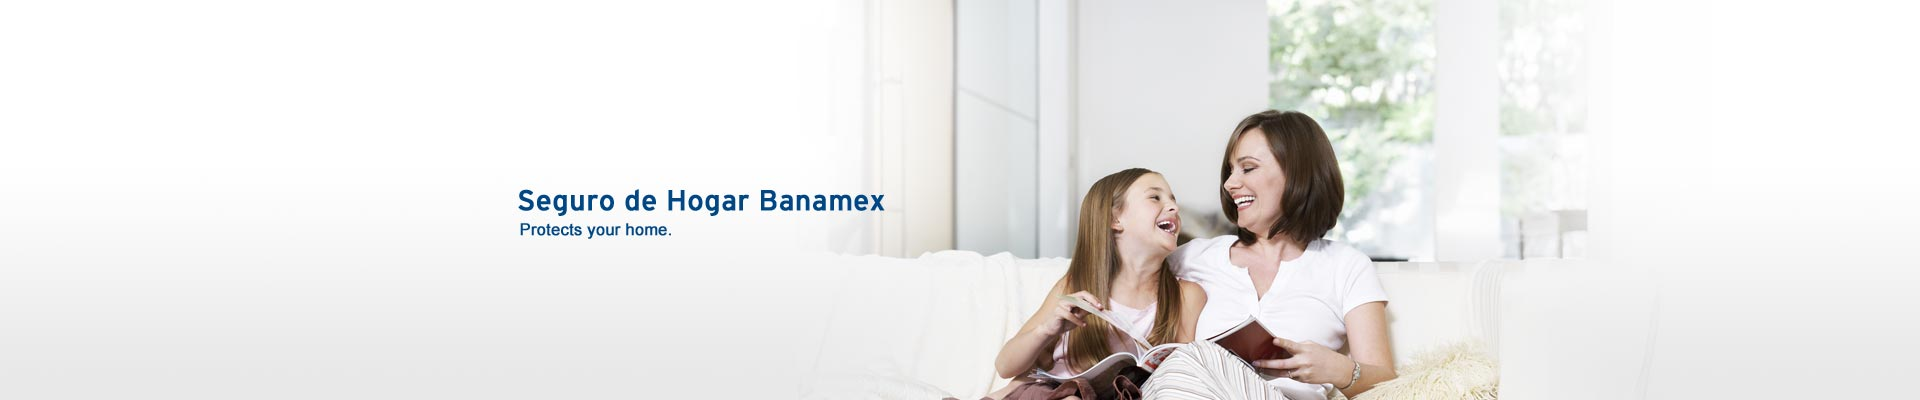 Home insurance banamex is the solution that protect your patrimony